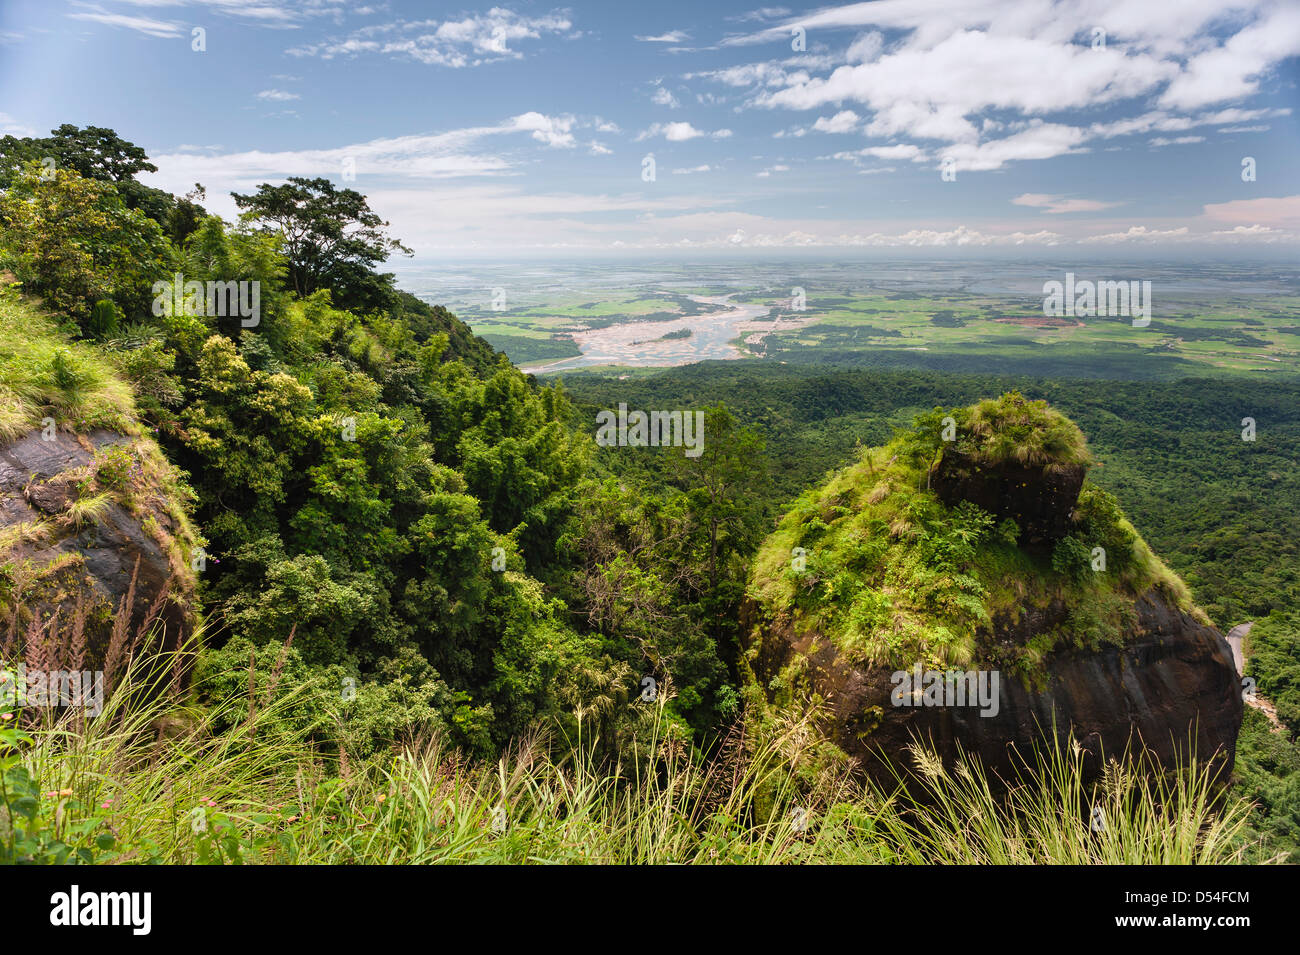 View across to Bangladesh from a high point in the Khasi Hills near the town of Cherrapunjee in Meghalaya, north - Stock Image